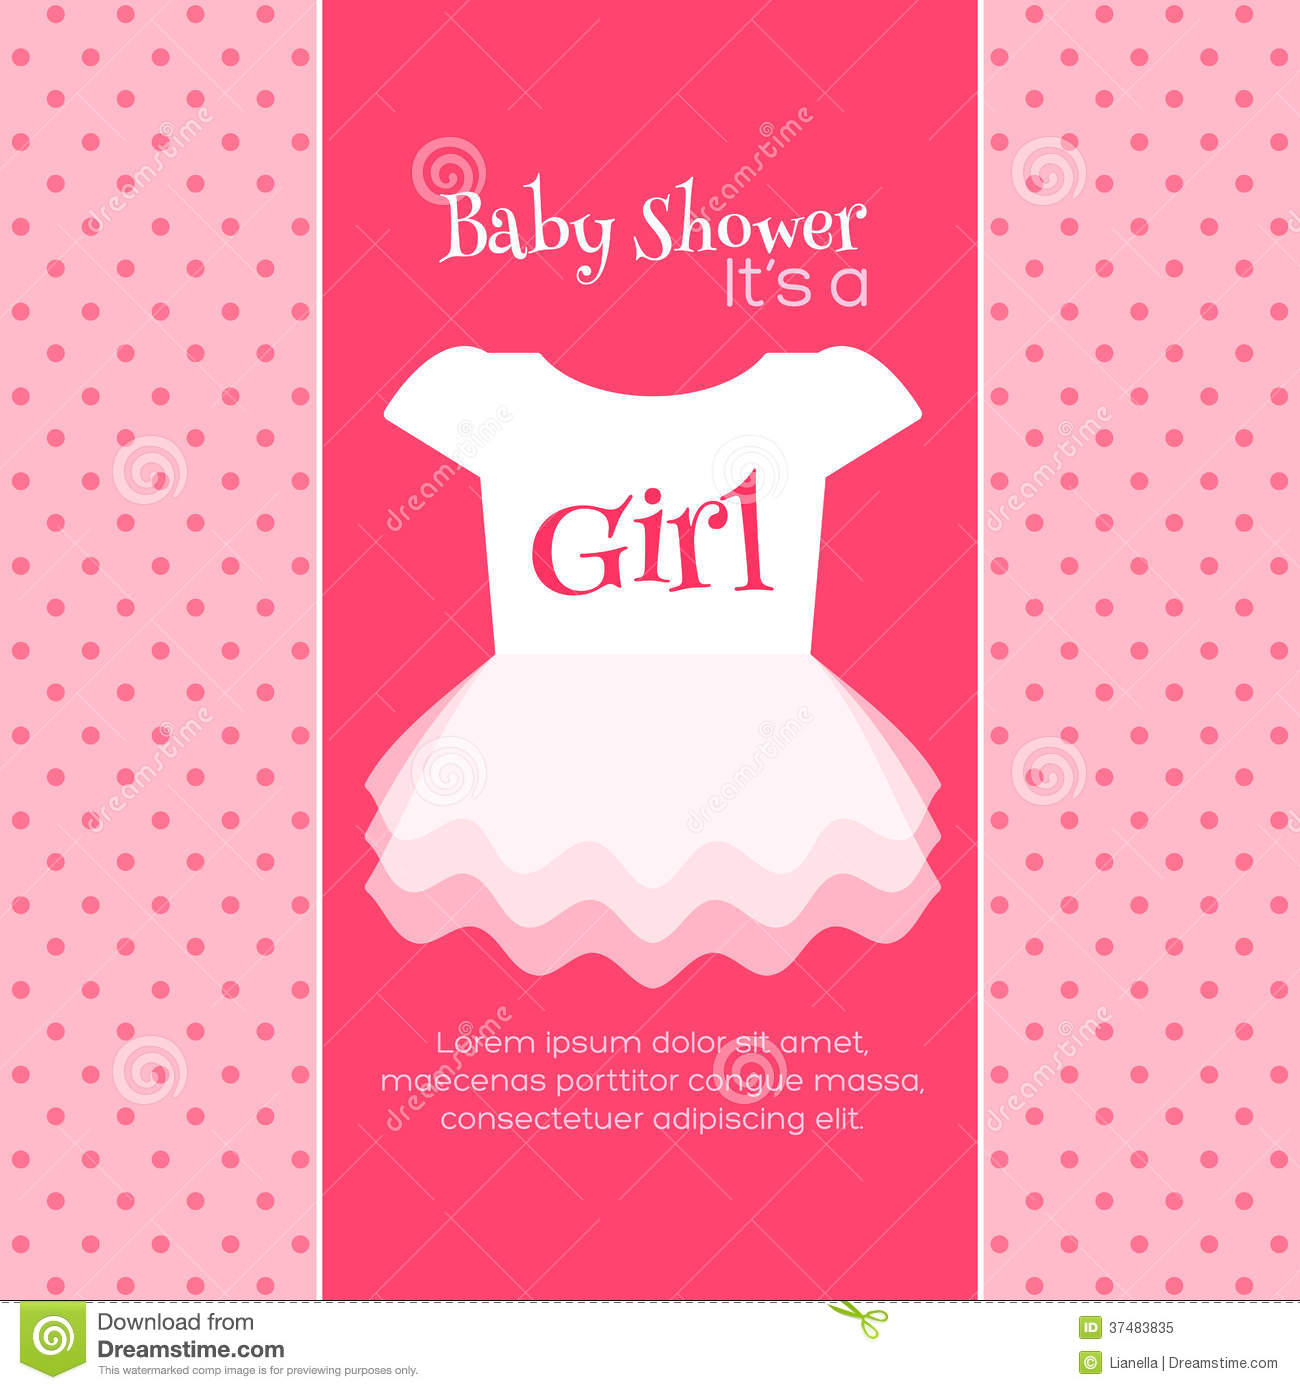 Baby Shower Invitation Template Royalty Free Photo Image – Free Downloadable Baby Shower Invitations Templates